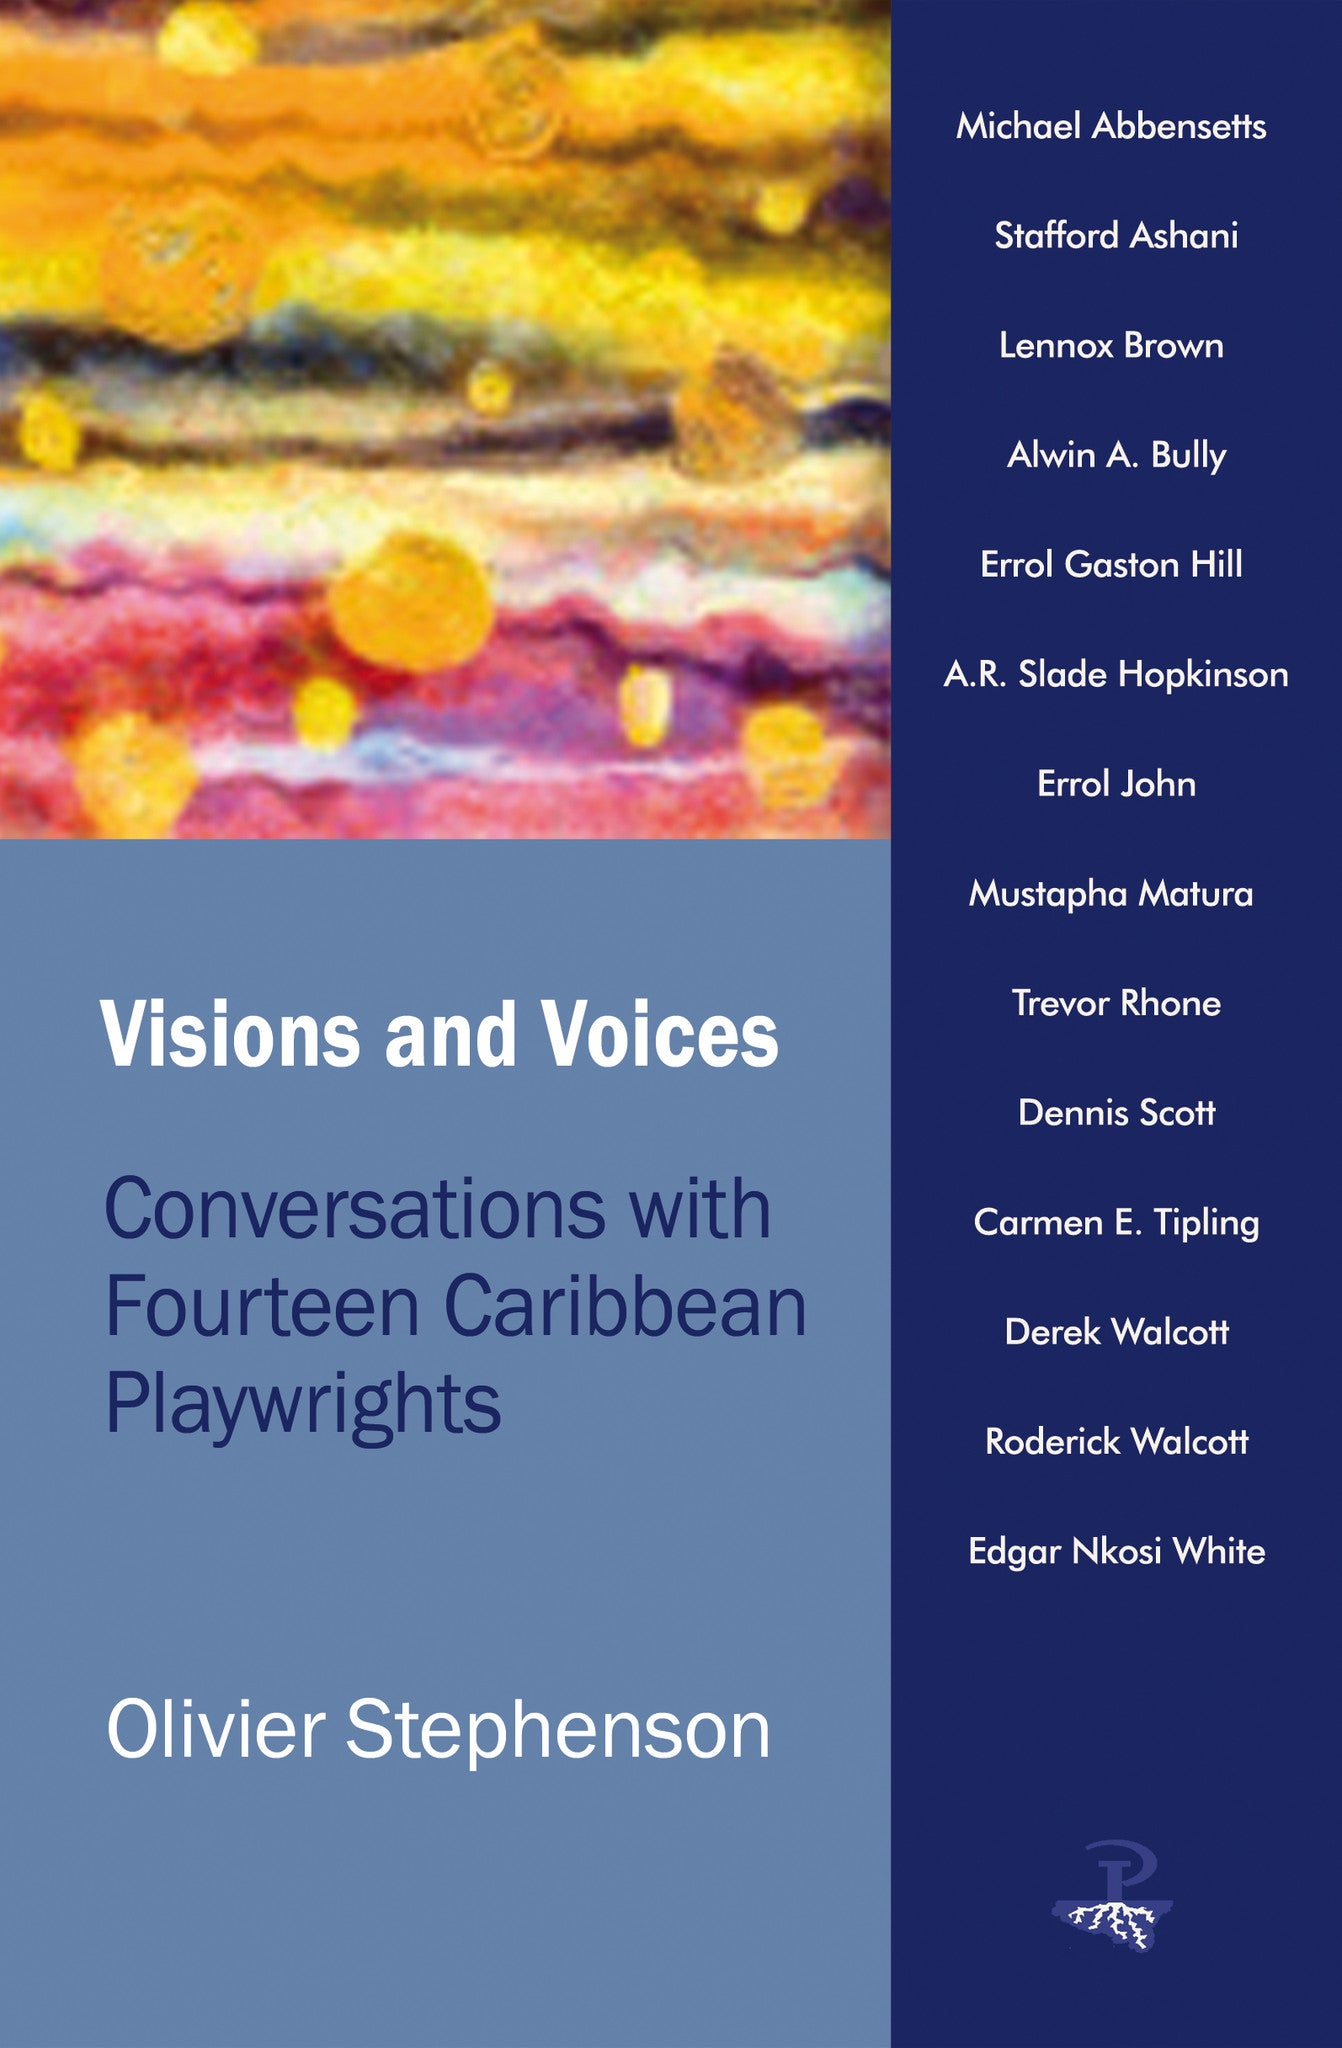 Visions and Voices: Conversations With Fourteen Caribbean Playwrights